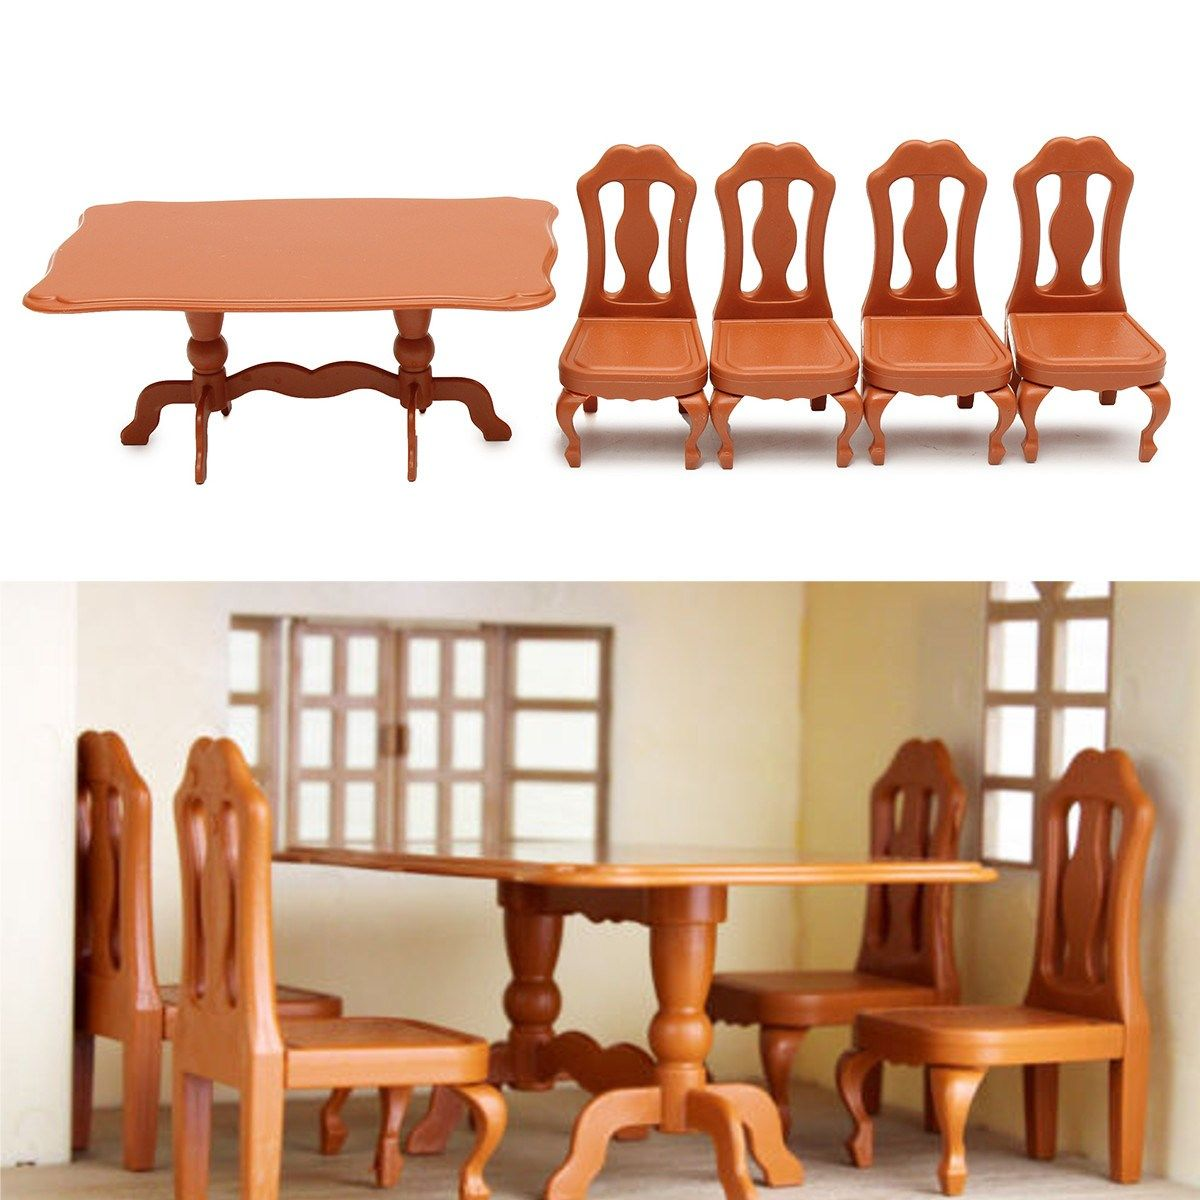 where to buy miniature furniture. DIY Miniatura Furniture Dining Tables Chairs Sets For Mini Doll House Miniatures Toys Gifts Where To Buy Miniature C